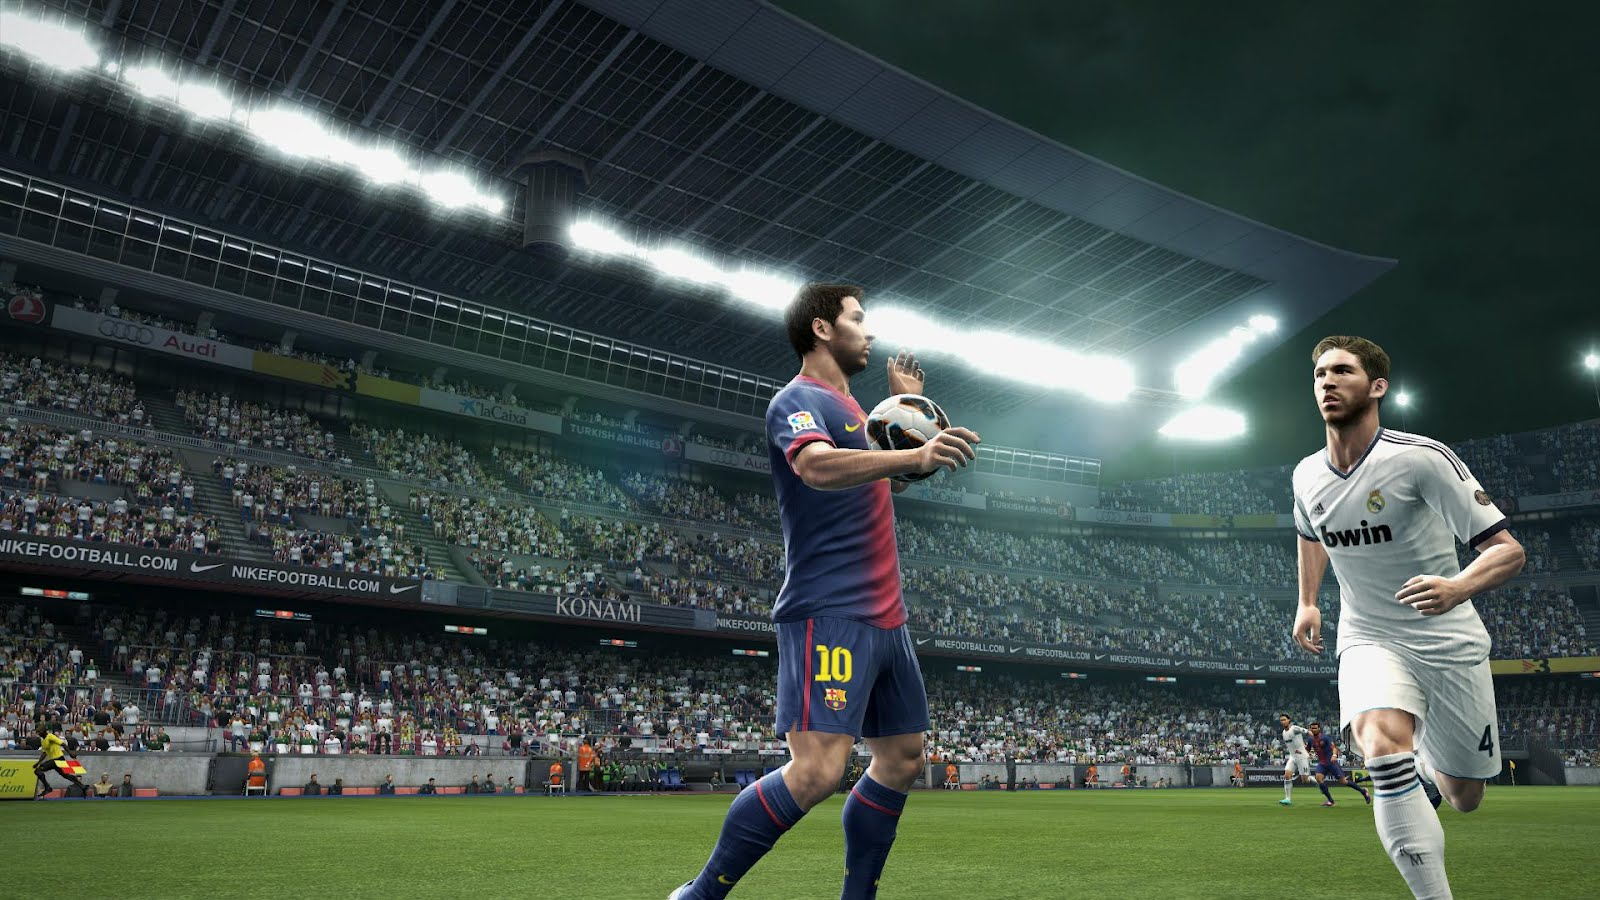 Download Patch 1.2 Pes 2013 Terbaru Mediafire